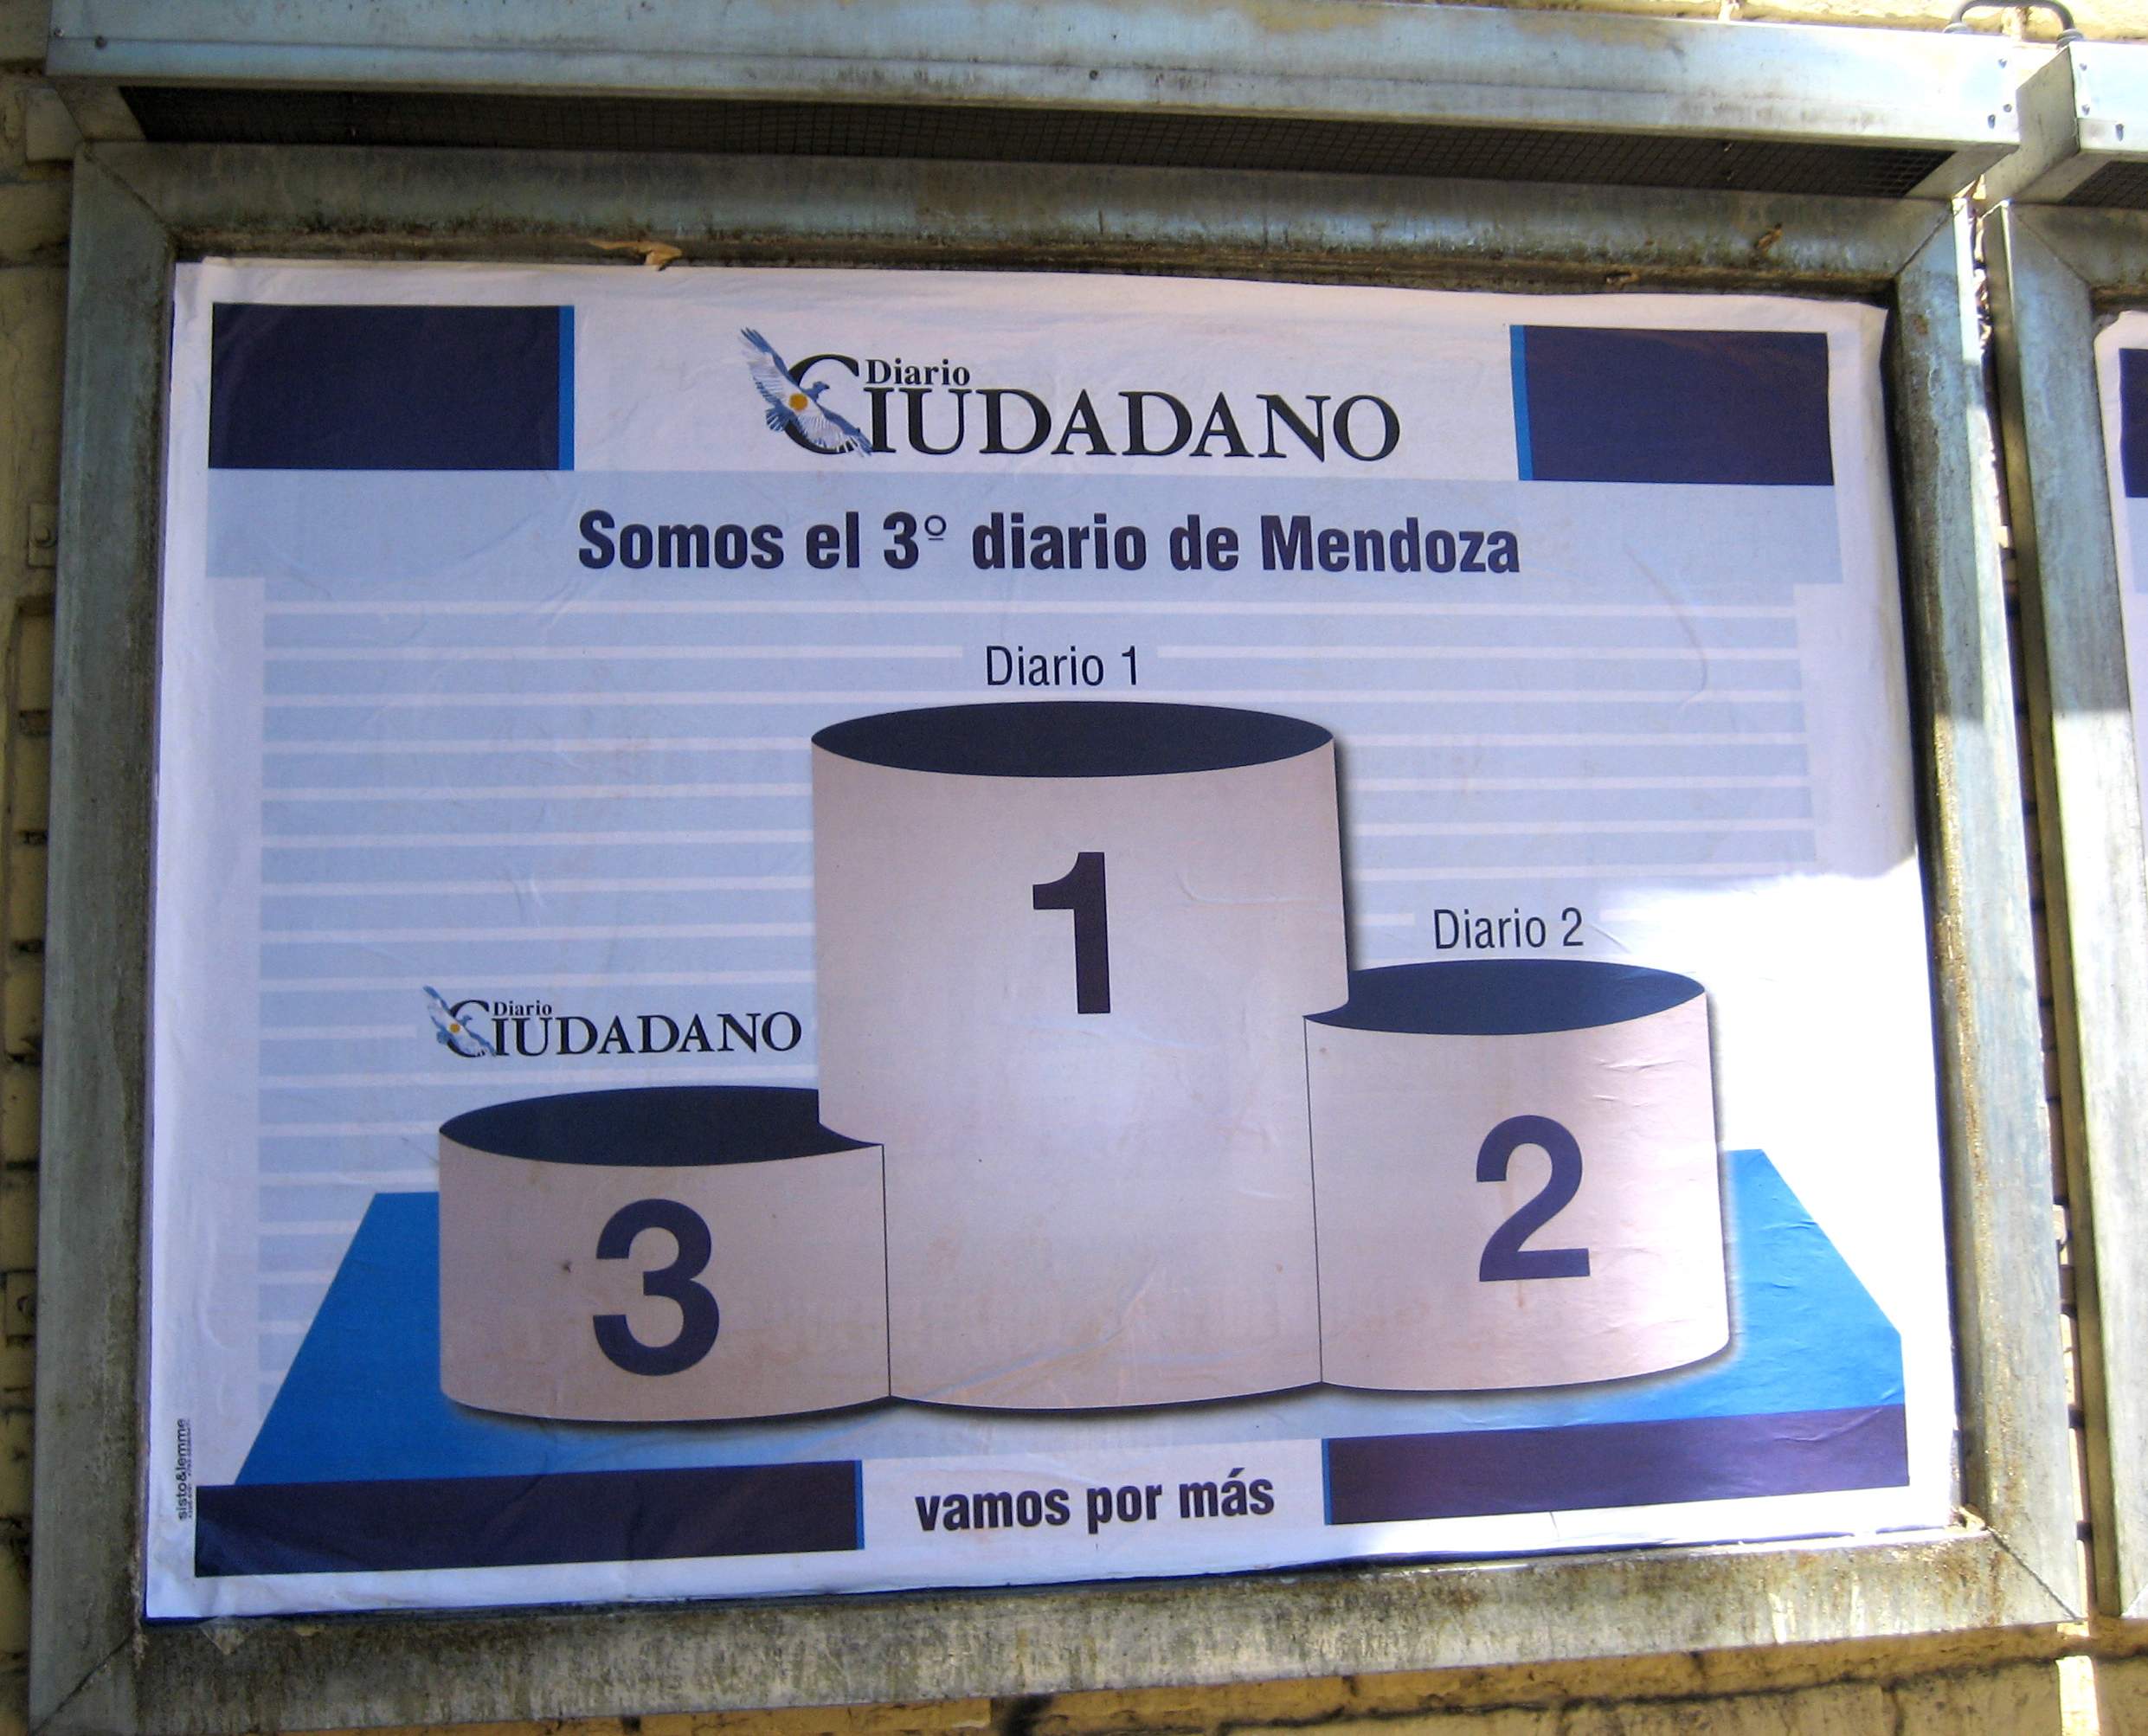 "a photo from 2007 of a poster in Mendoza, Argentina that i thought was hilarious. a bus ad for Diario Ciudadano features a cartoon of a first-, second-, and third-place podium. Diario Ciudadano is third place. two unnamed newspapers, ""Diario 1"" and ""Diario 2"" are ahead of them. large letters at the top of the poster says, ""Somos el tercero diario de Mendoza"", or ""we are the third-place newspaper in Mendoza."" in small letters at the bottom of the poster is what i assume is their tagline. ""vamos por más,"" or ""let's go for more."""